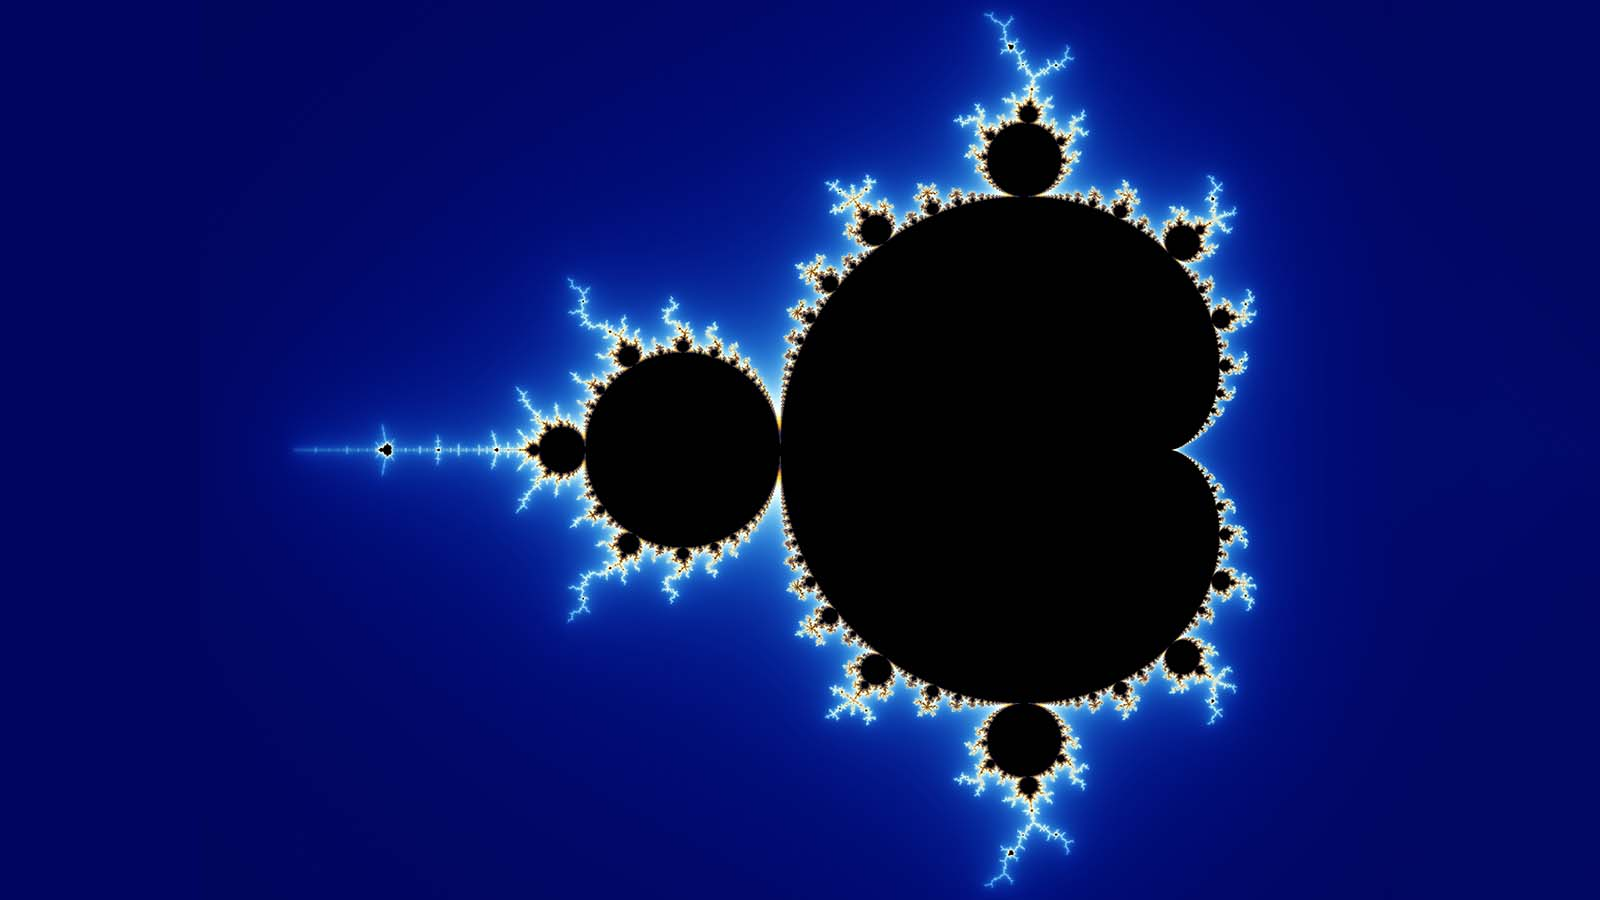 A geometric fractal known as a Mandelbrot set drawn in black against a deep blue background